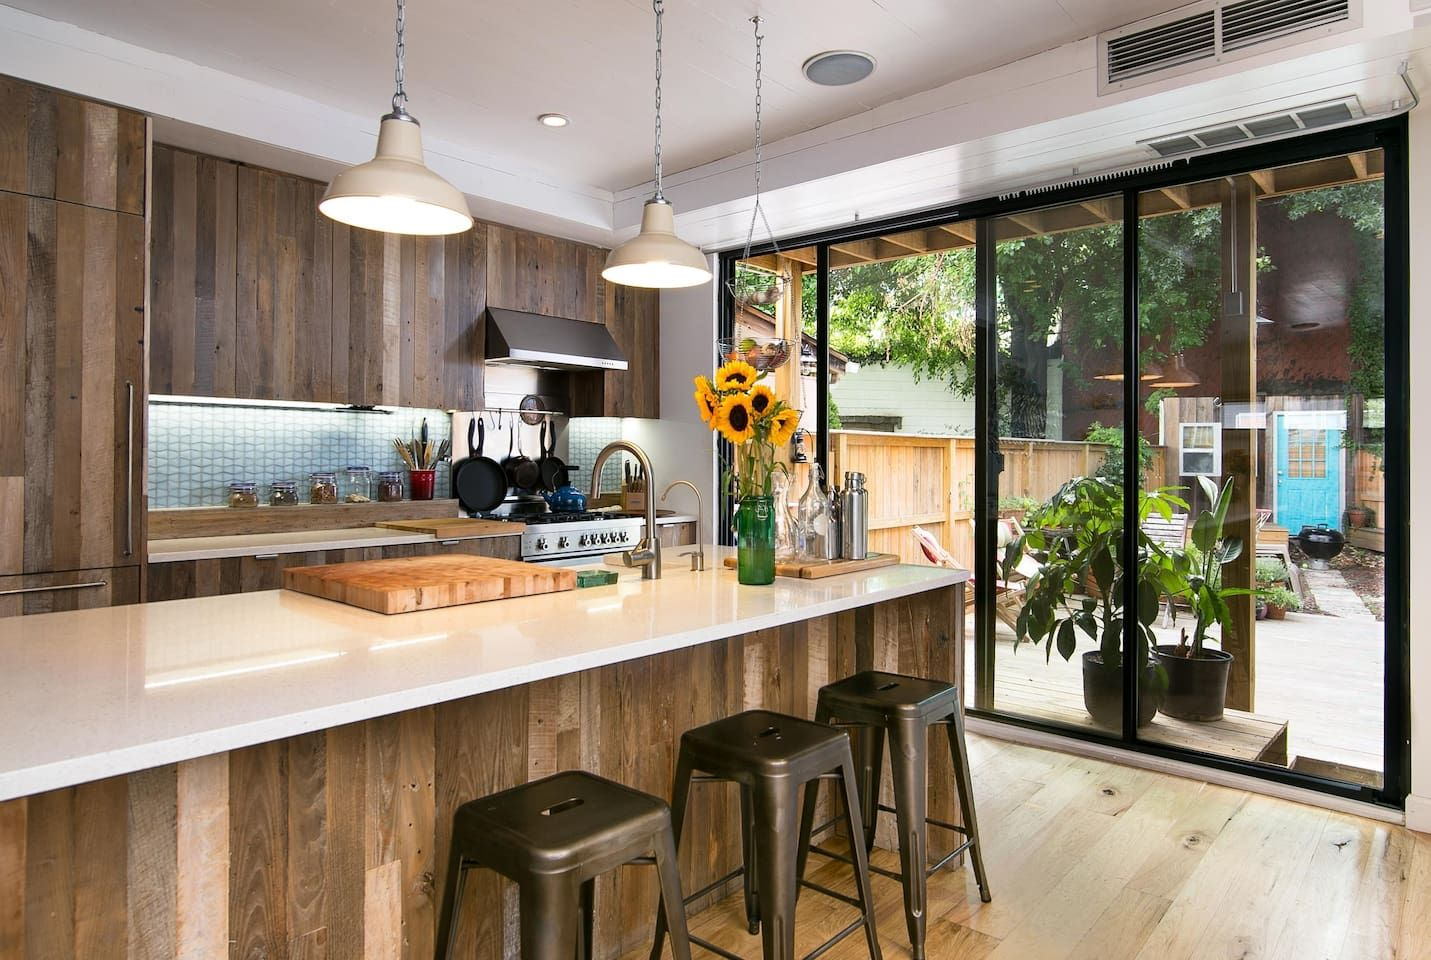 Maison à Brooklyn, États-Unis. This is a custom built private home 1 block from Mccarren Park and 5 minute walk to the Bedford L train. Complete with Chefs Kitchen, open floor plan, 2 full bedrooms and 2 bathrooms. Large backyard with lounge area and seasonal guest cottage. We ...